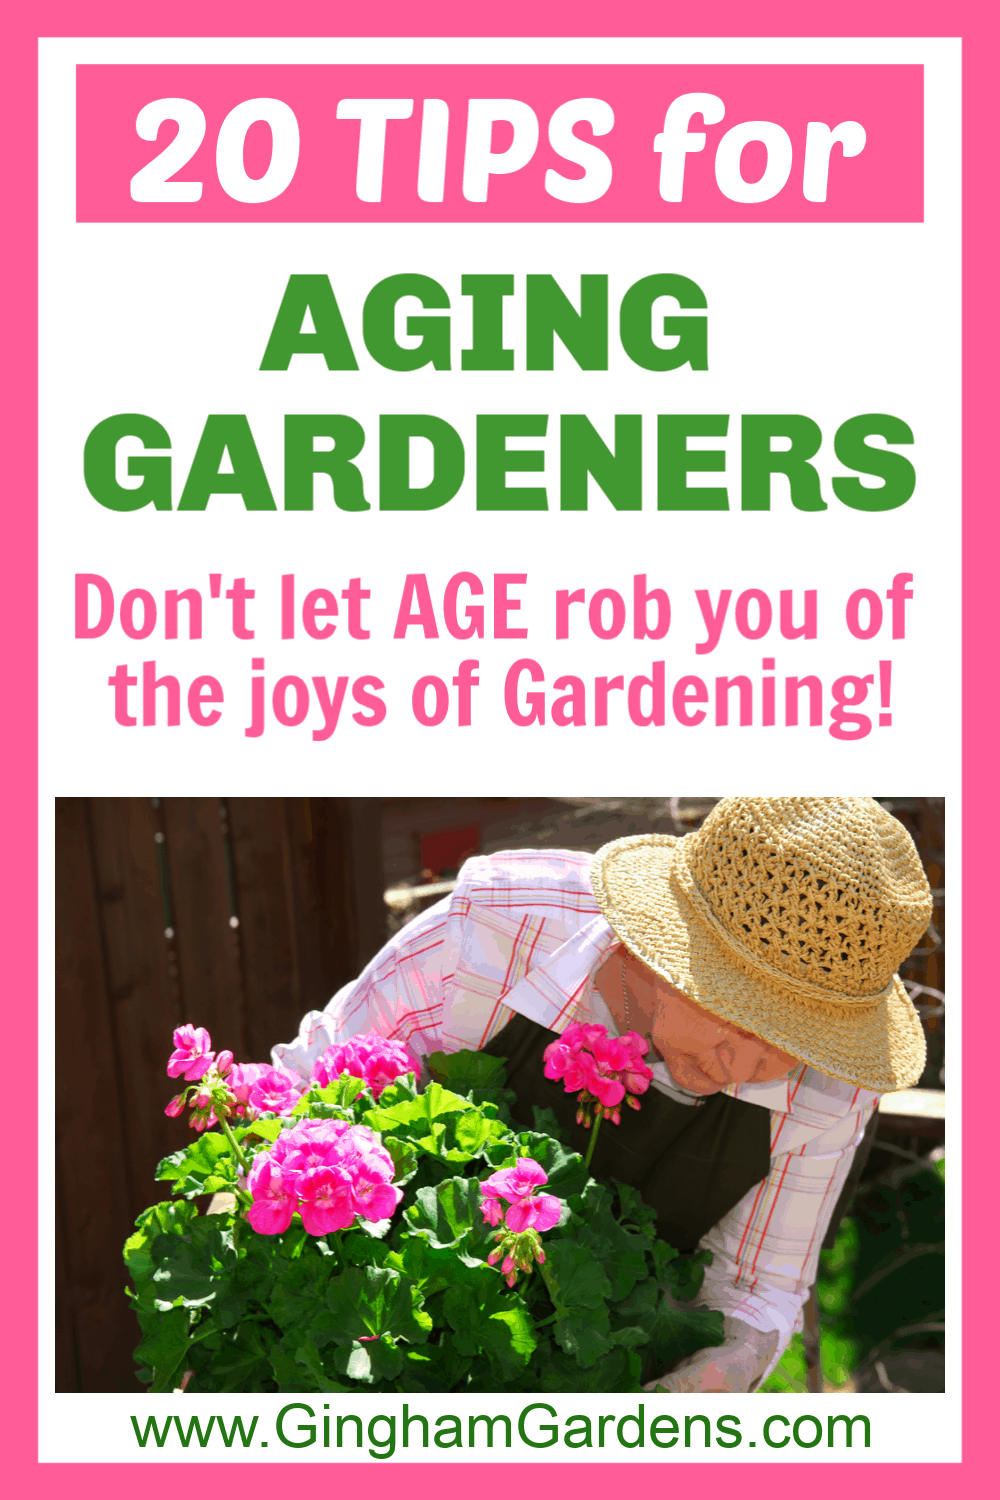 Image of Elderly Woman Gardener with text overlay - 20 Tips for Aging Gardeners